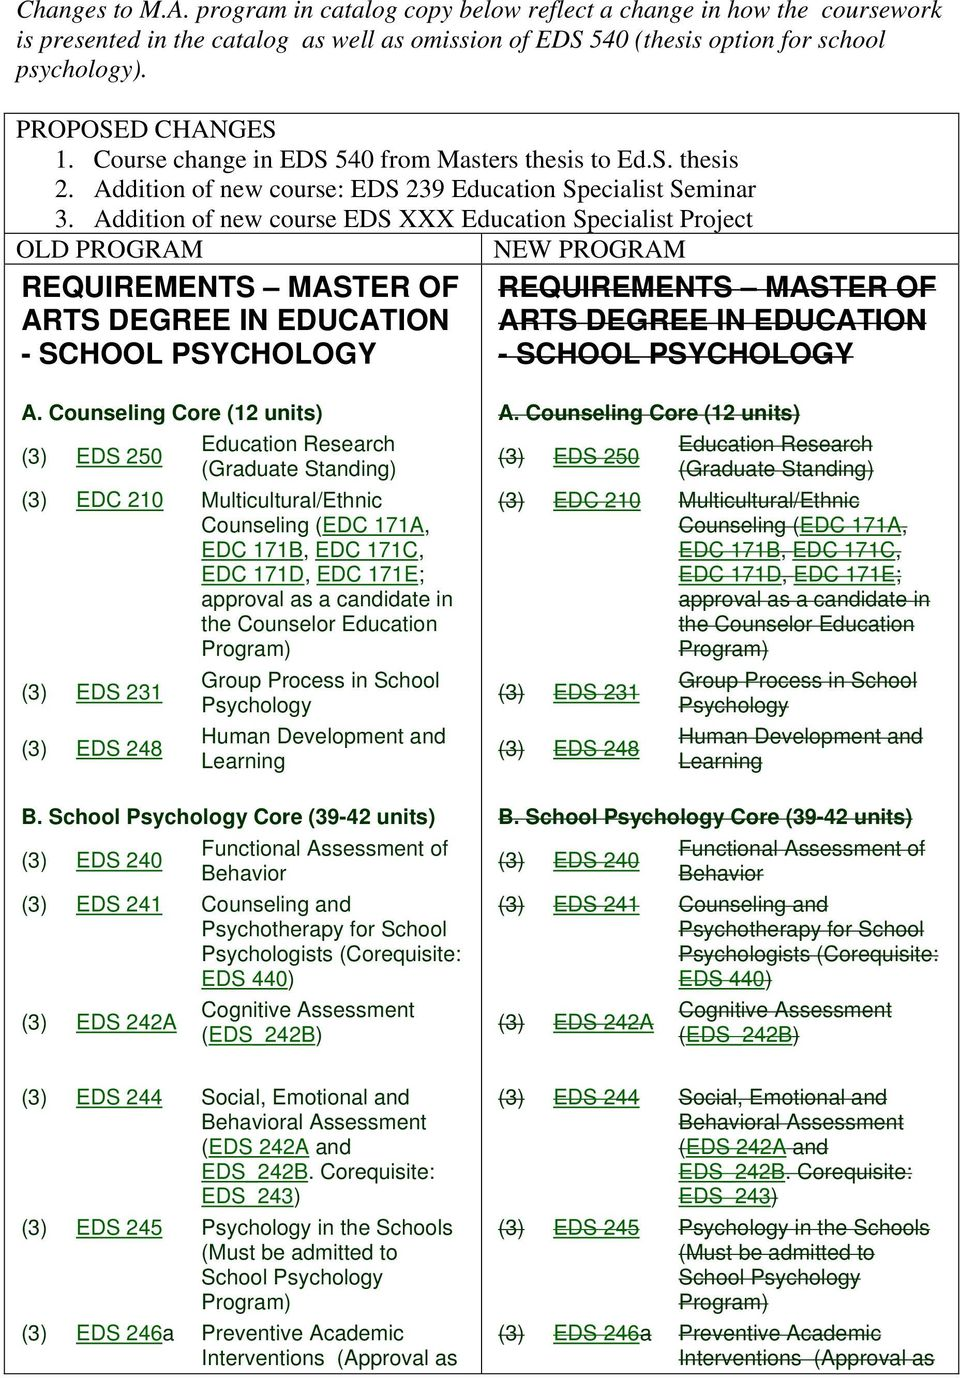 Addition of new course EDS XXX Education Specialist Project OLD PROGRAM NEW PROGRAM REQUIREMENTS MASTER OF ARTS DEGREE IN EDUCATION - SCHOOL PSYCHOLOGY REQUIREMENTS MASTER OF ARTS DEGREE IN EDUCATION